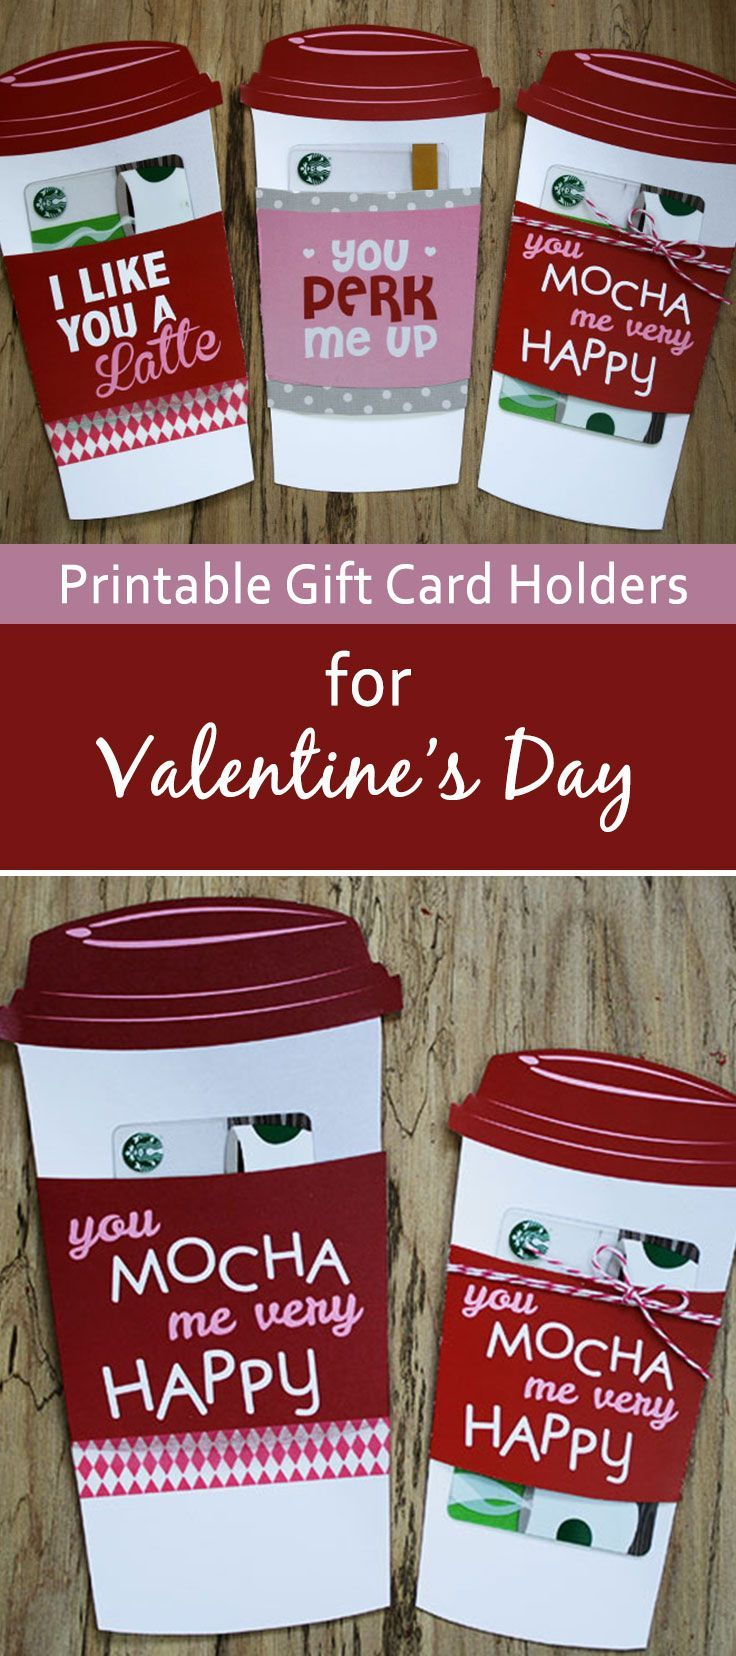 Youll love this lastminute Valentines Day gift card holder – Valentines Cards and Gifts